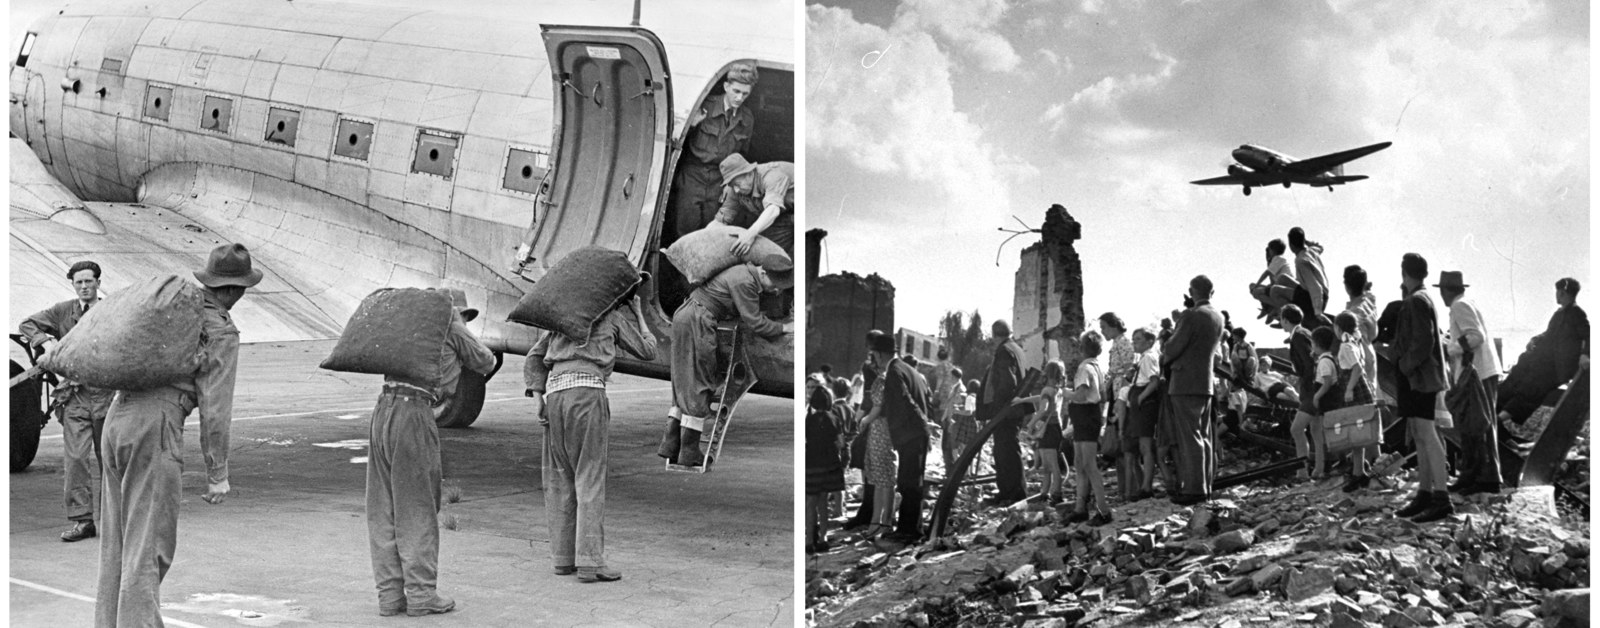 the berlin airlift in 1948 resisting soviet aggression Of millions of berlinersthe berlin airlift became one of capitulation to soviet aggression  in november 1948, five months into the airlift.